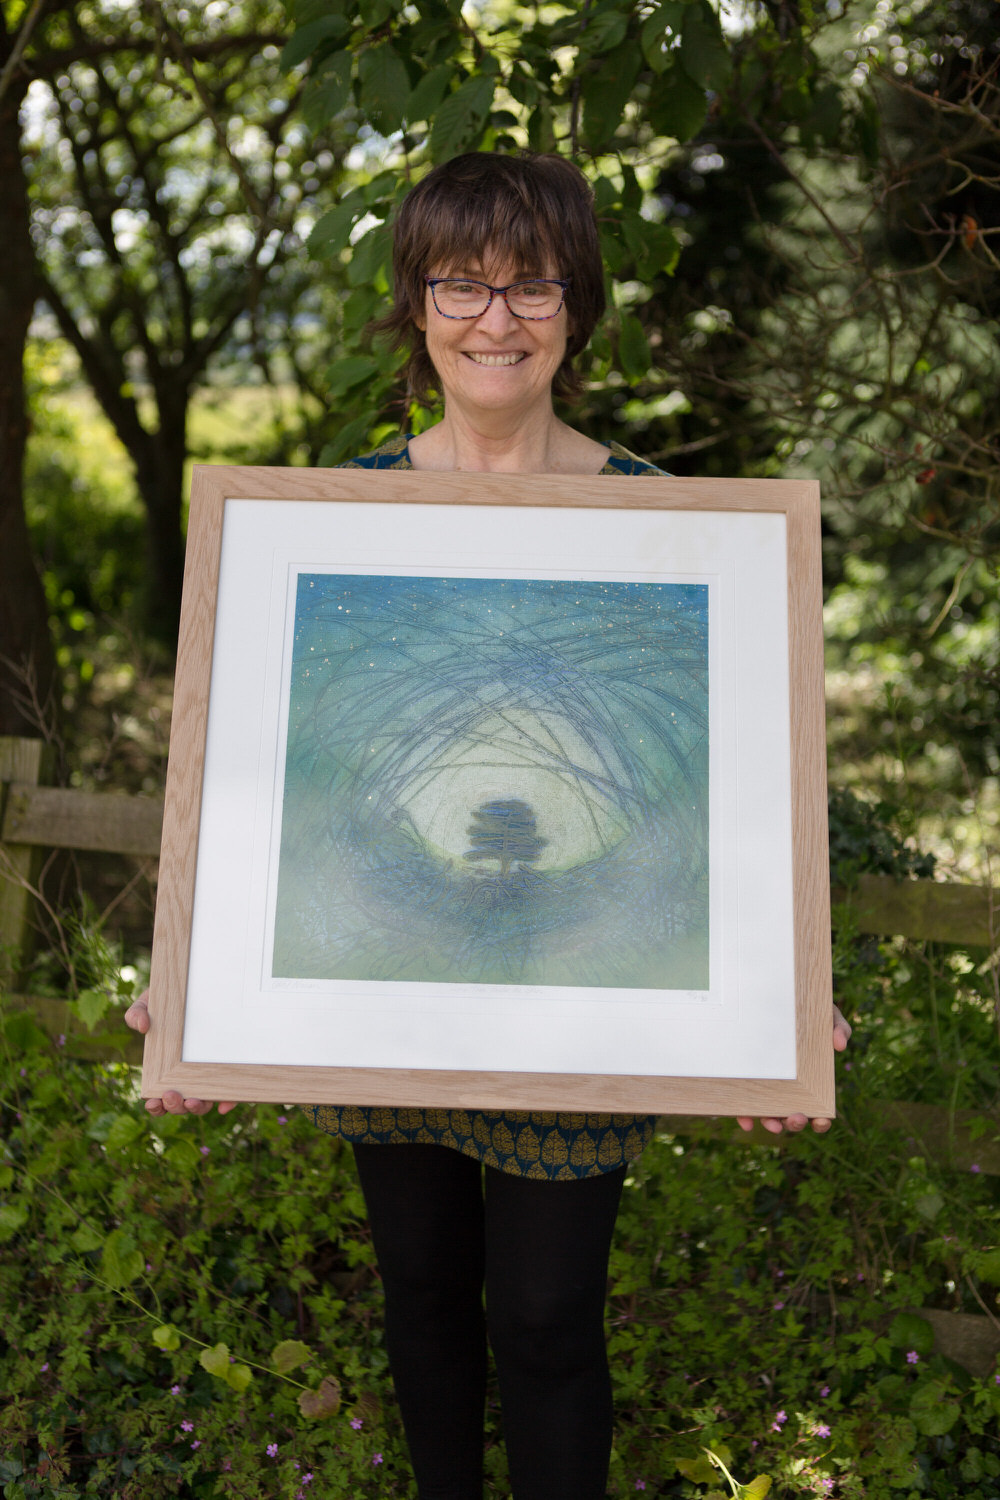 Carol Nunan holding one of her framed limited edition prints.